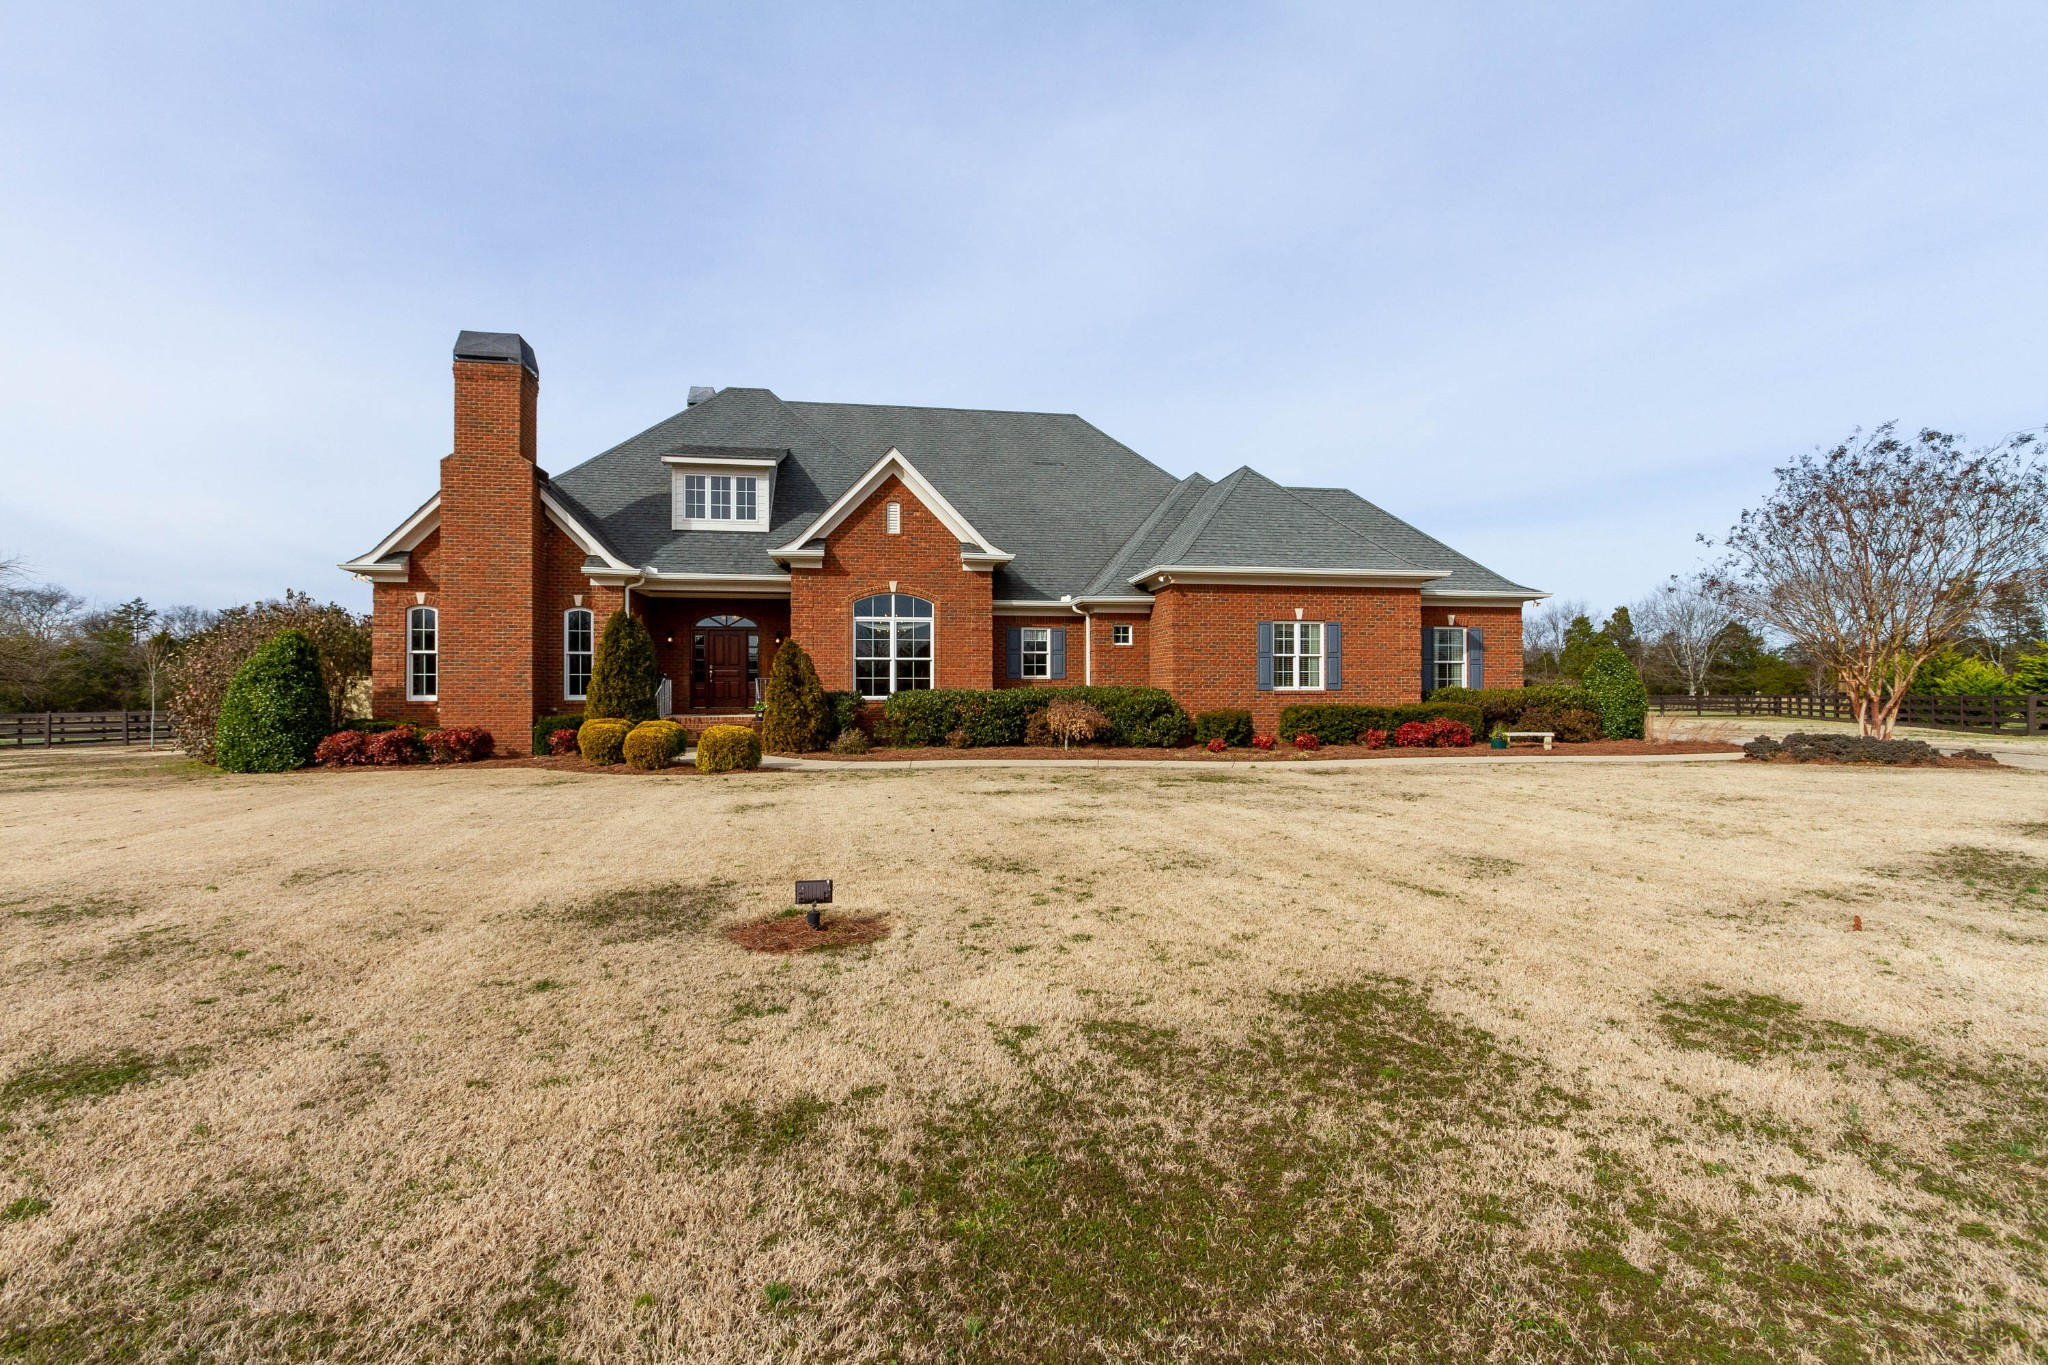 123 Hidden Cove Ct, Murfreesboro, TN 37128 - Murfreesboro, TN real estate listing